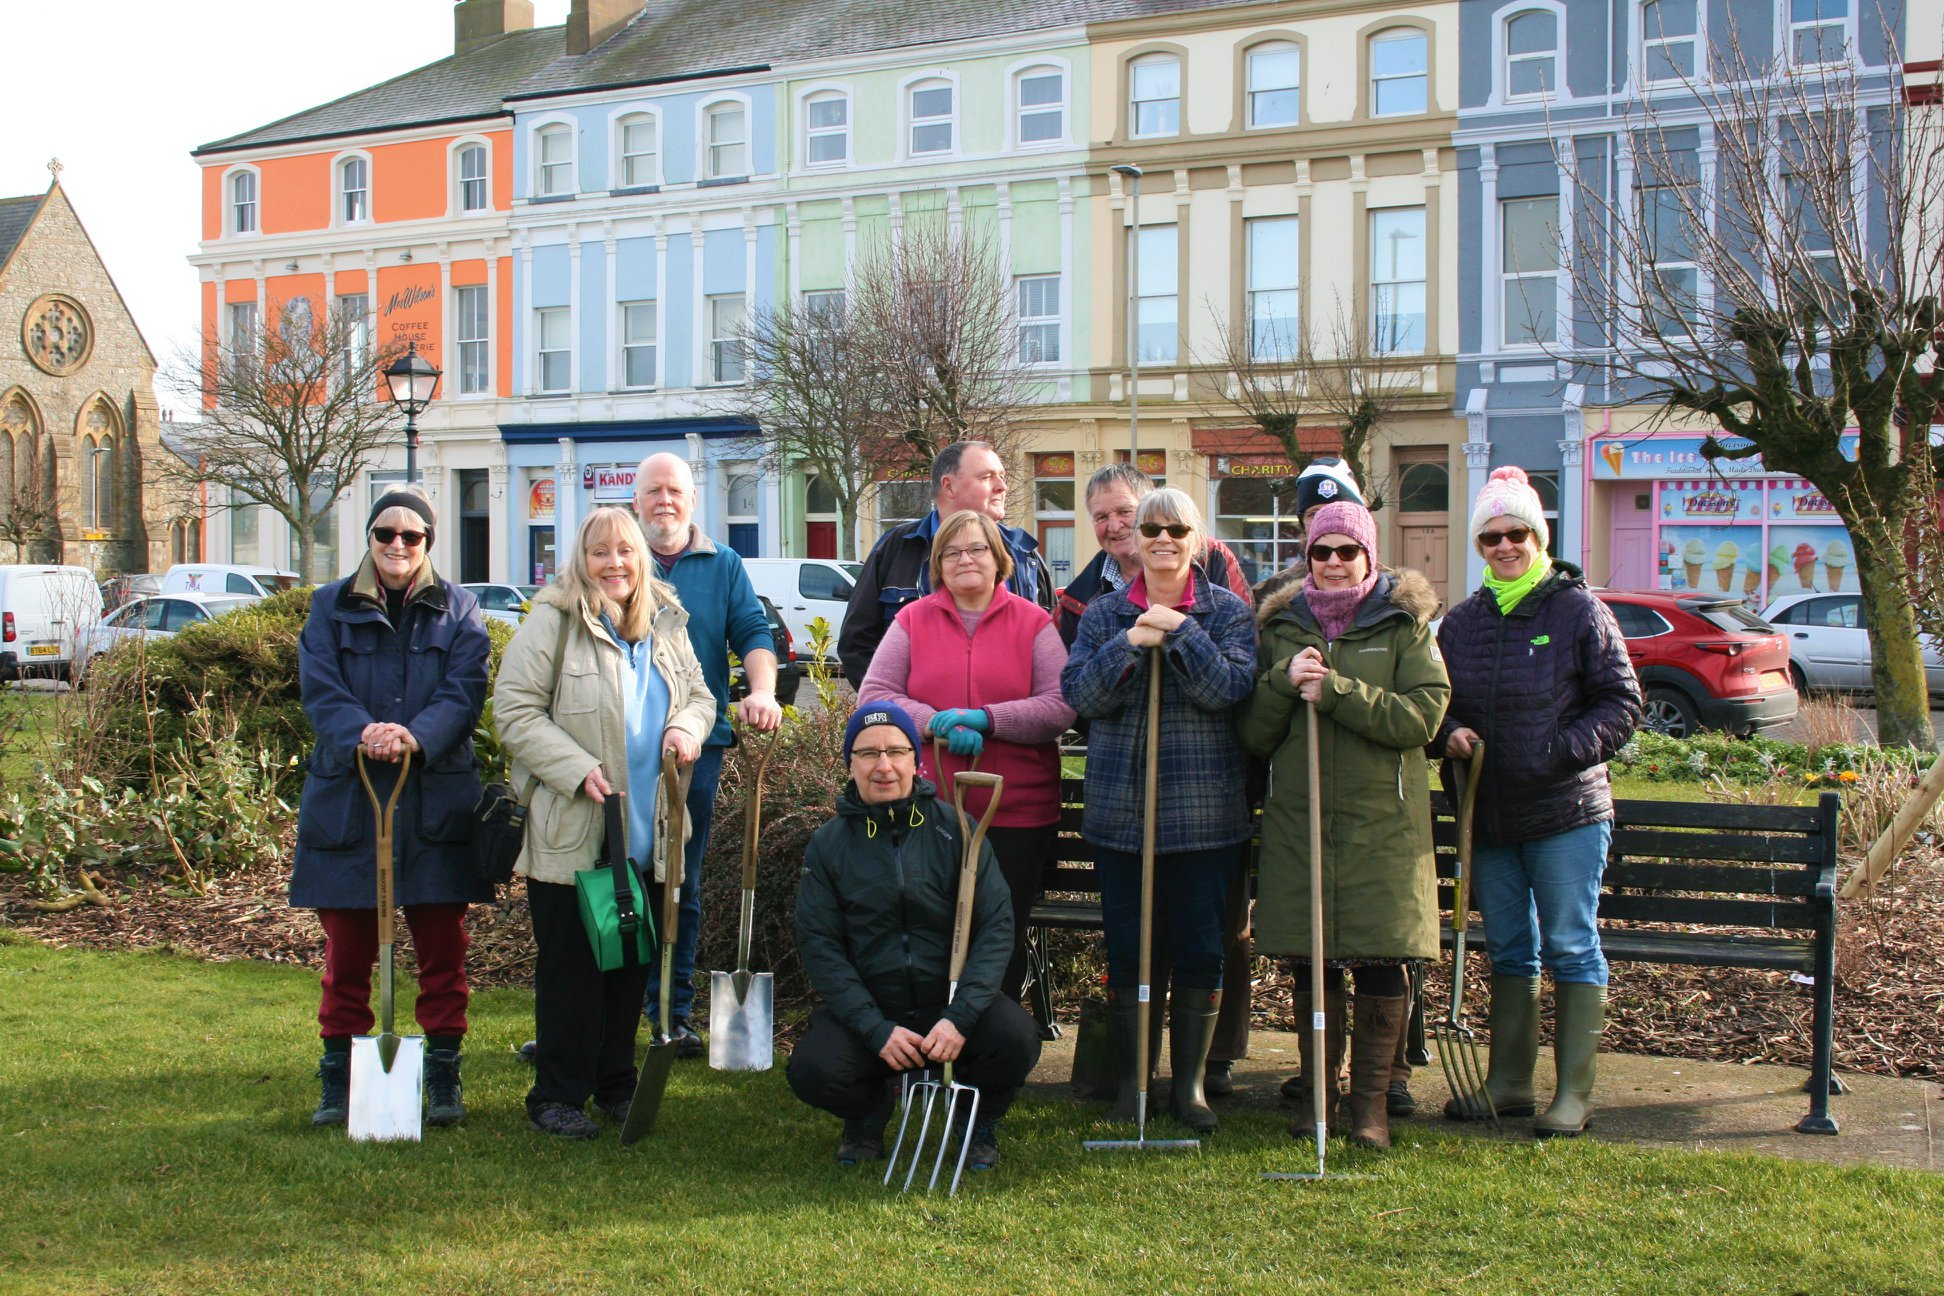 Well Done to the Friends of Silloth Green